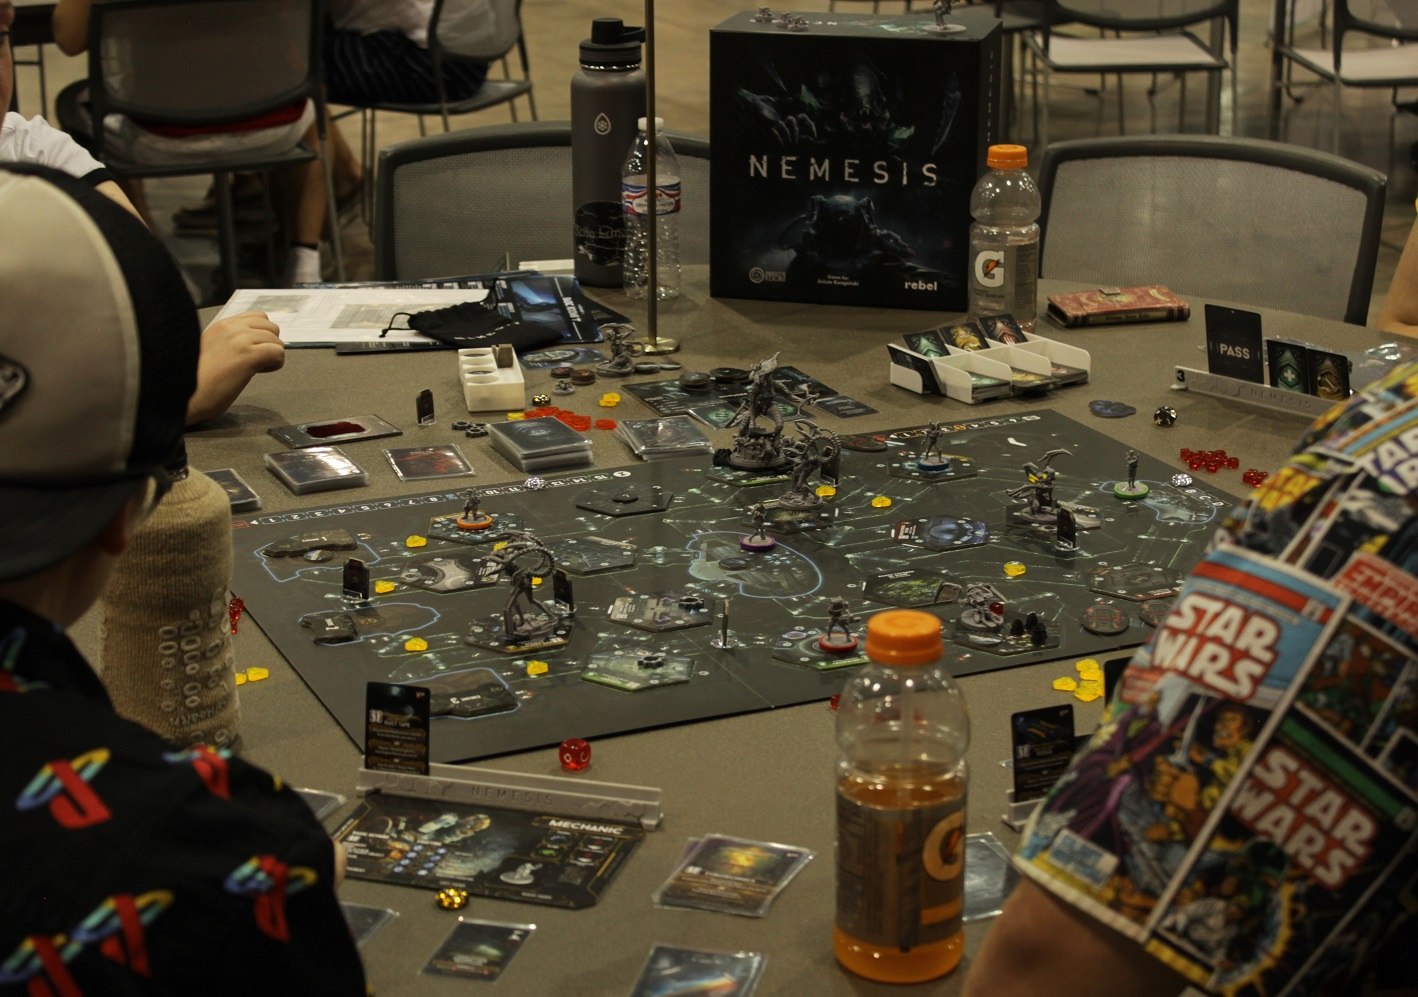 Not just video games, Game On hosted tabletop gaming as well. Photo by Justin Franco.